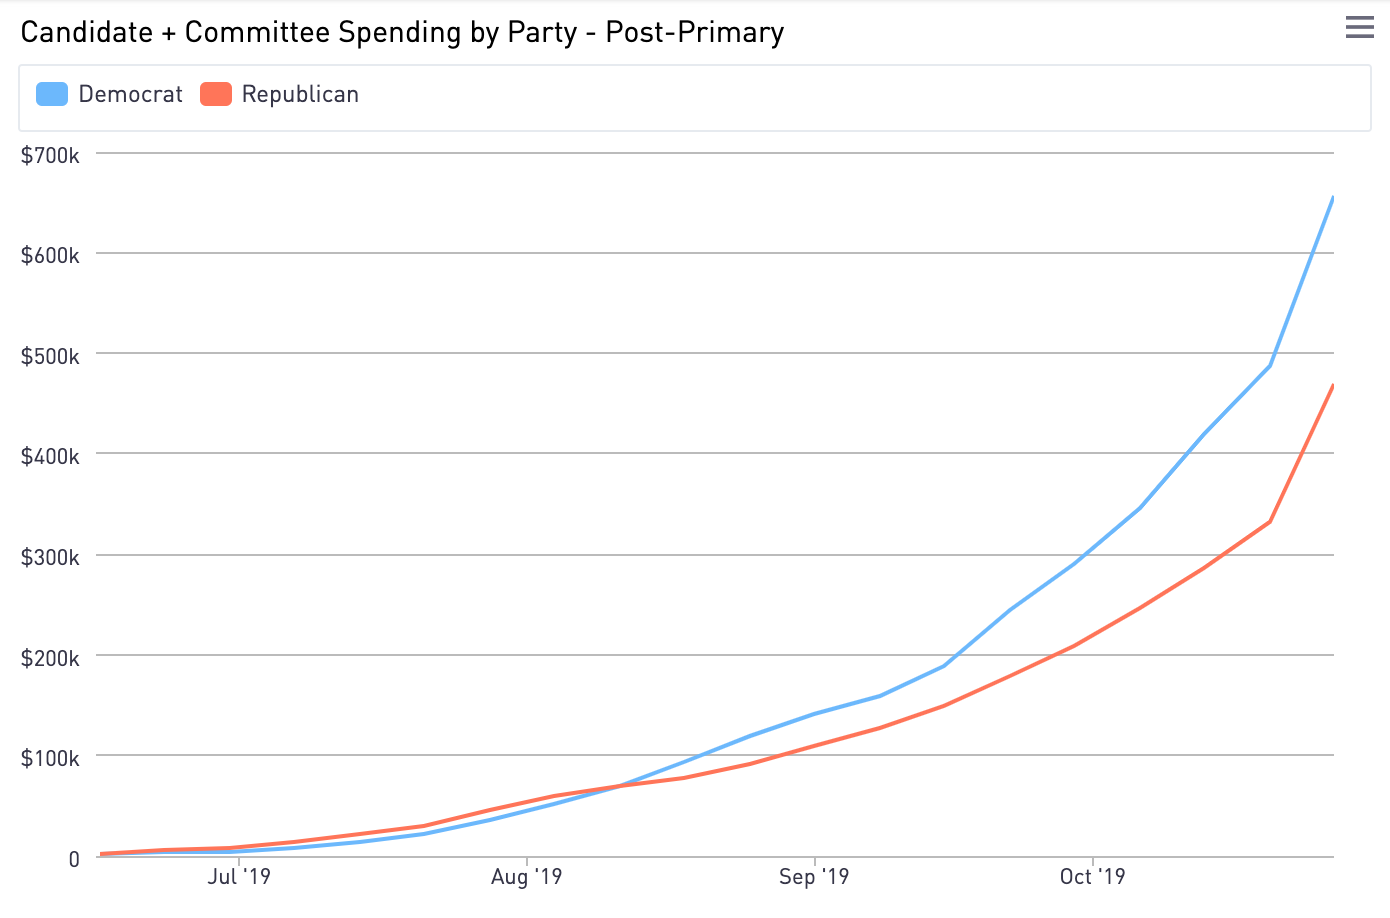 Democrats in Virginia severely outspent their Republican opponents